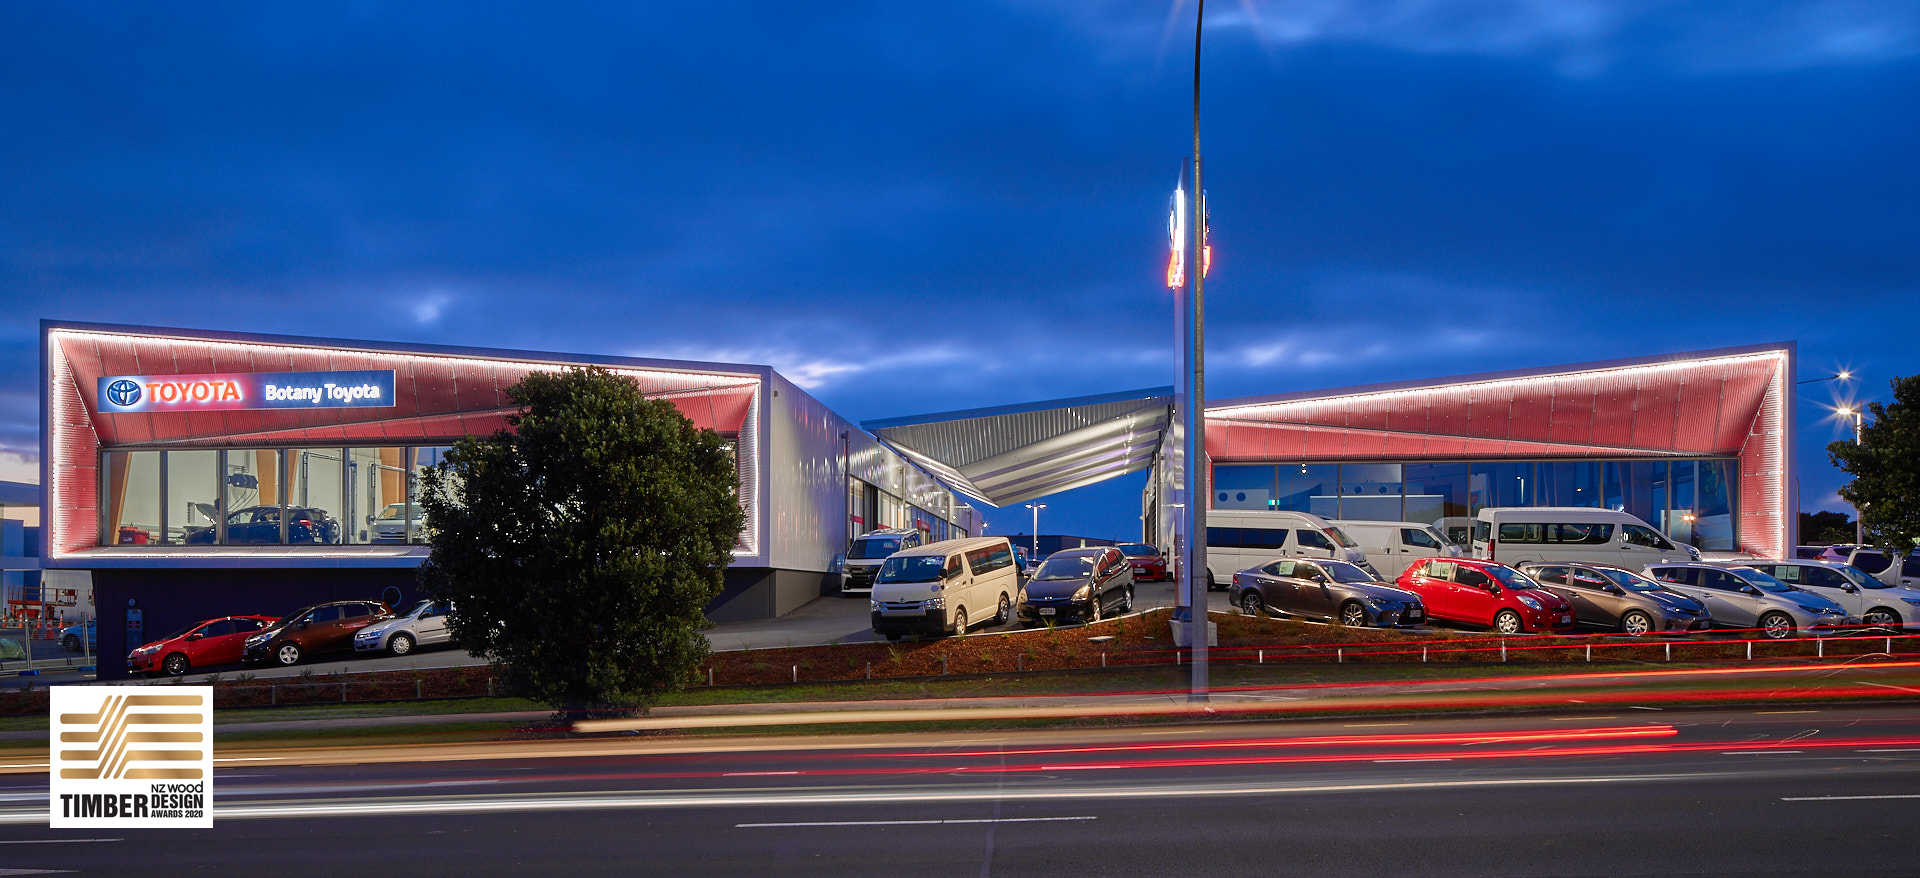 Toyota Showroom and Workshop, Botany